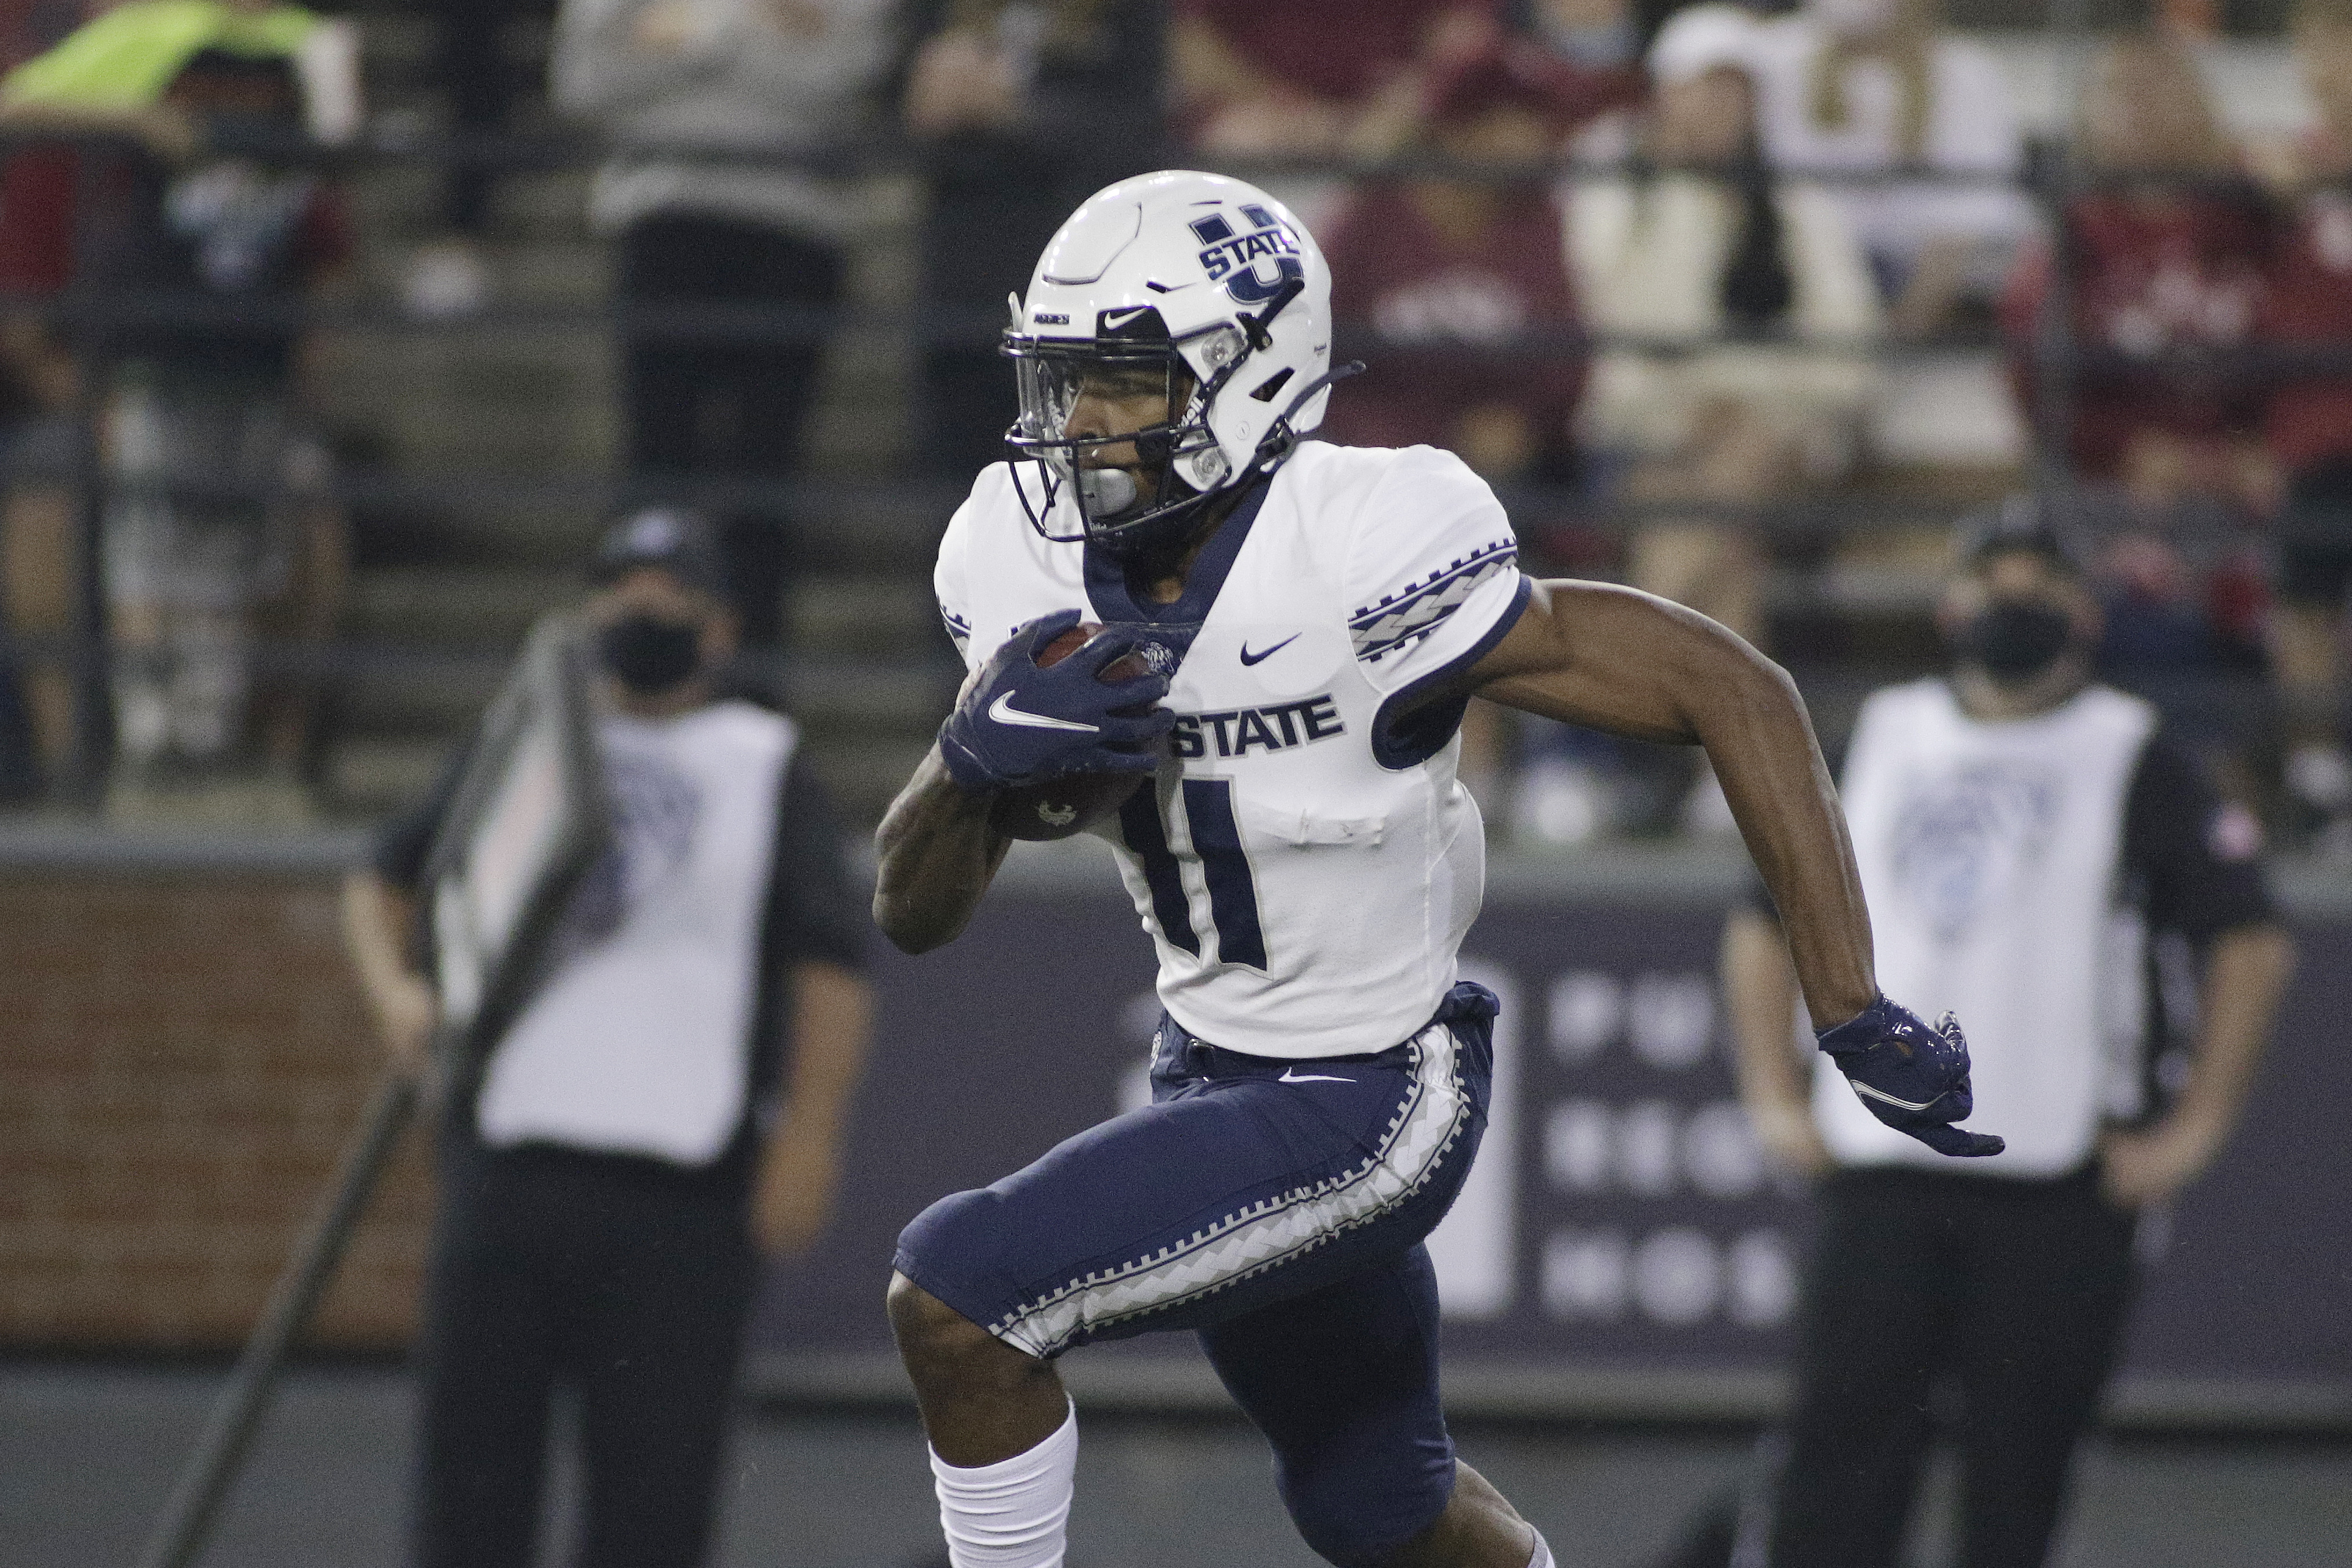 Utah State wide receiver Savon Scarver carries the ball